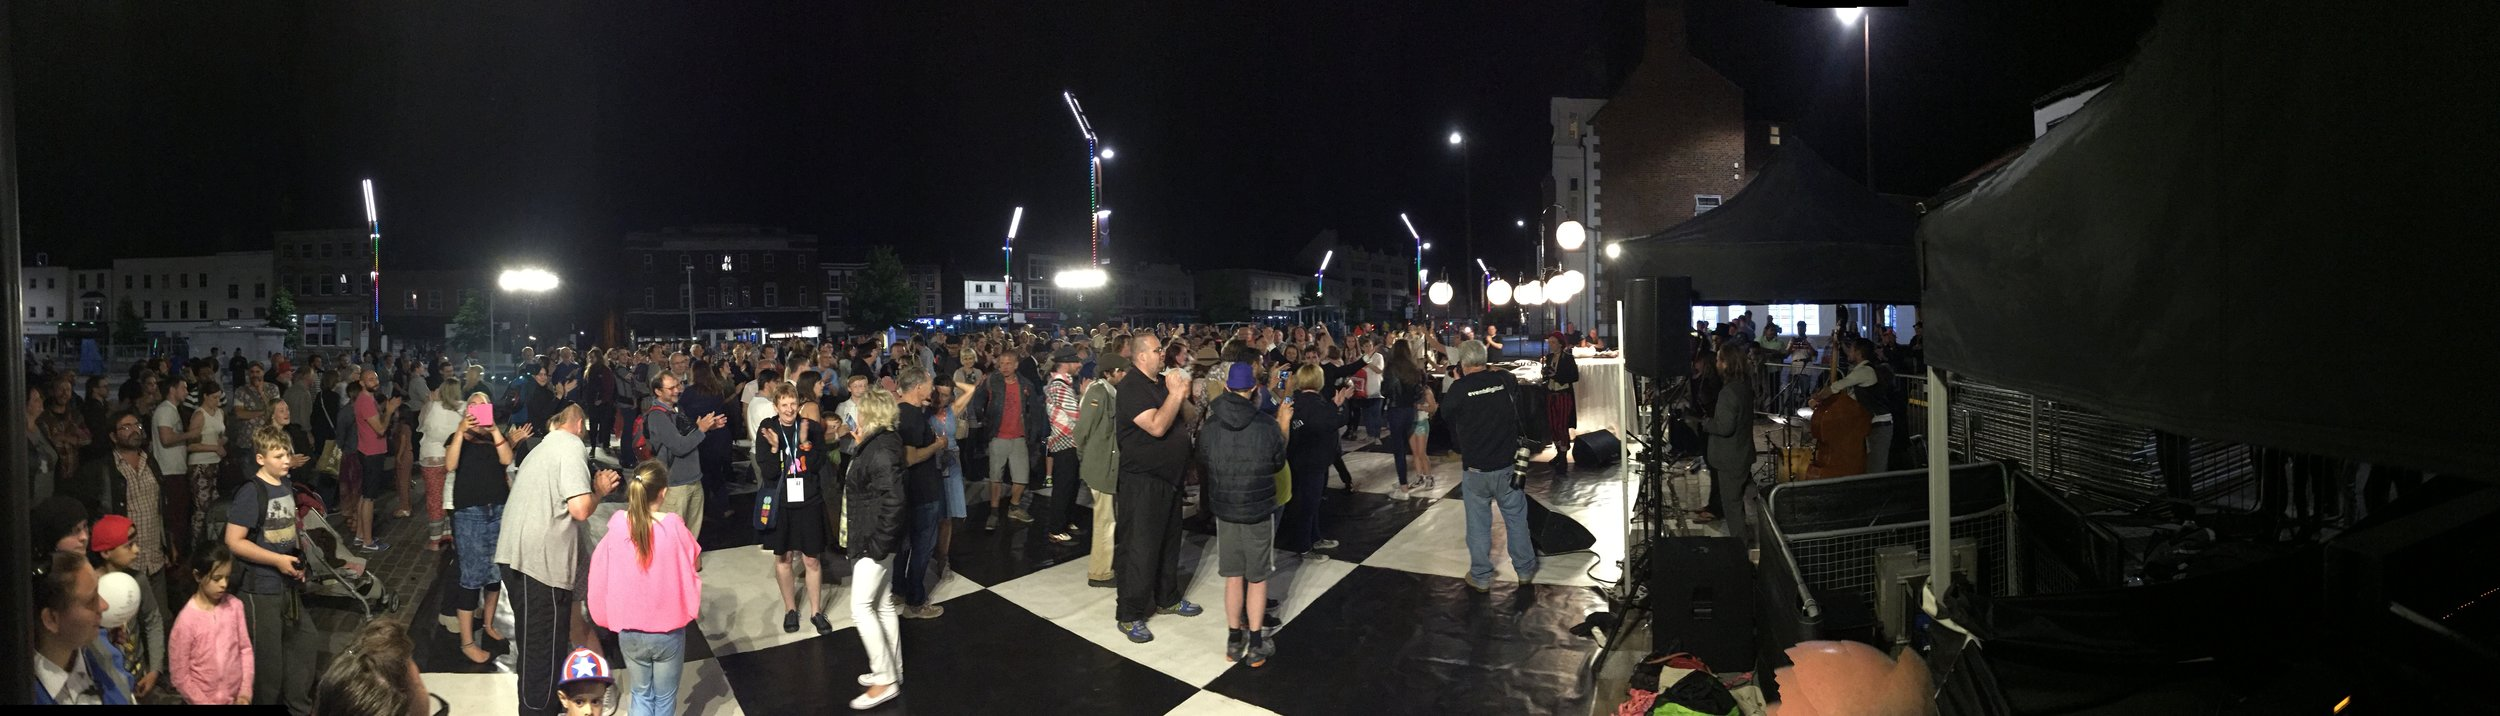 Audiences with live band at the end of The Ball in Stockton